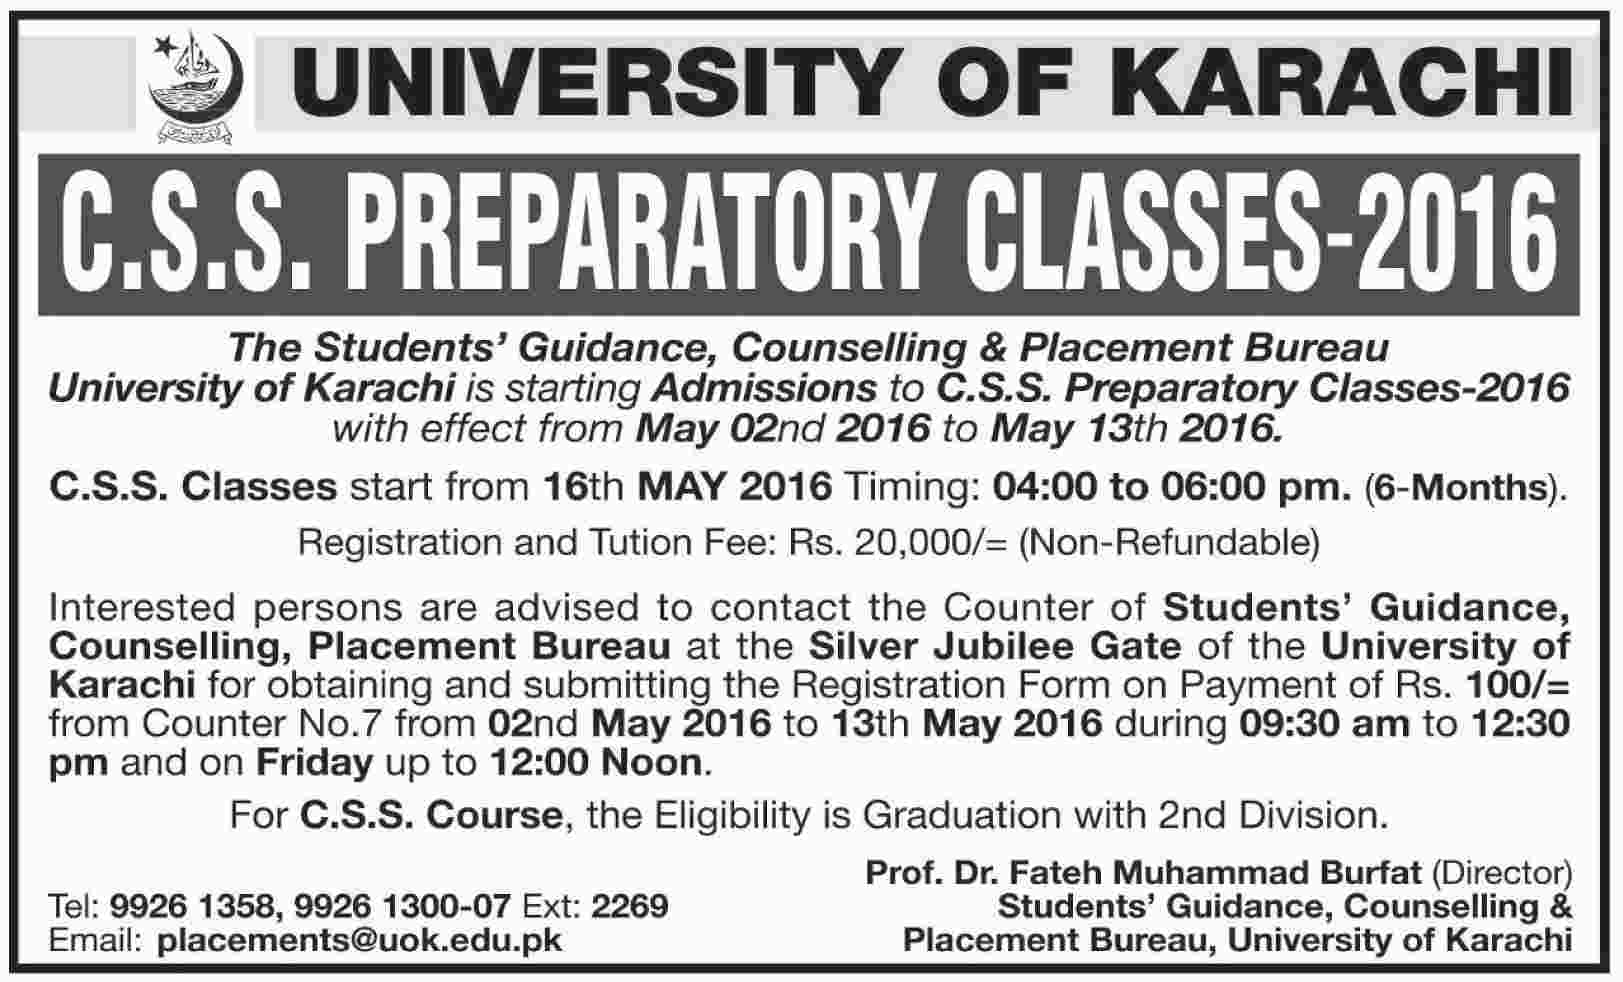 University of Karachi CSS Preparatory Classes